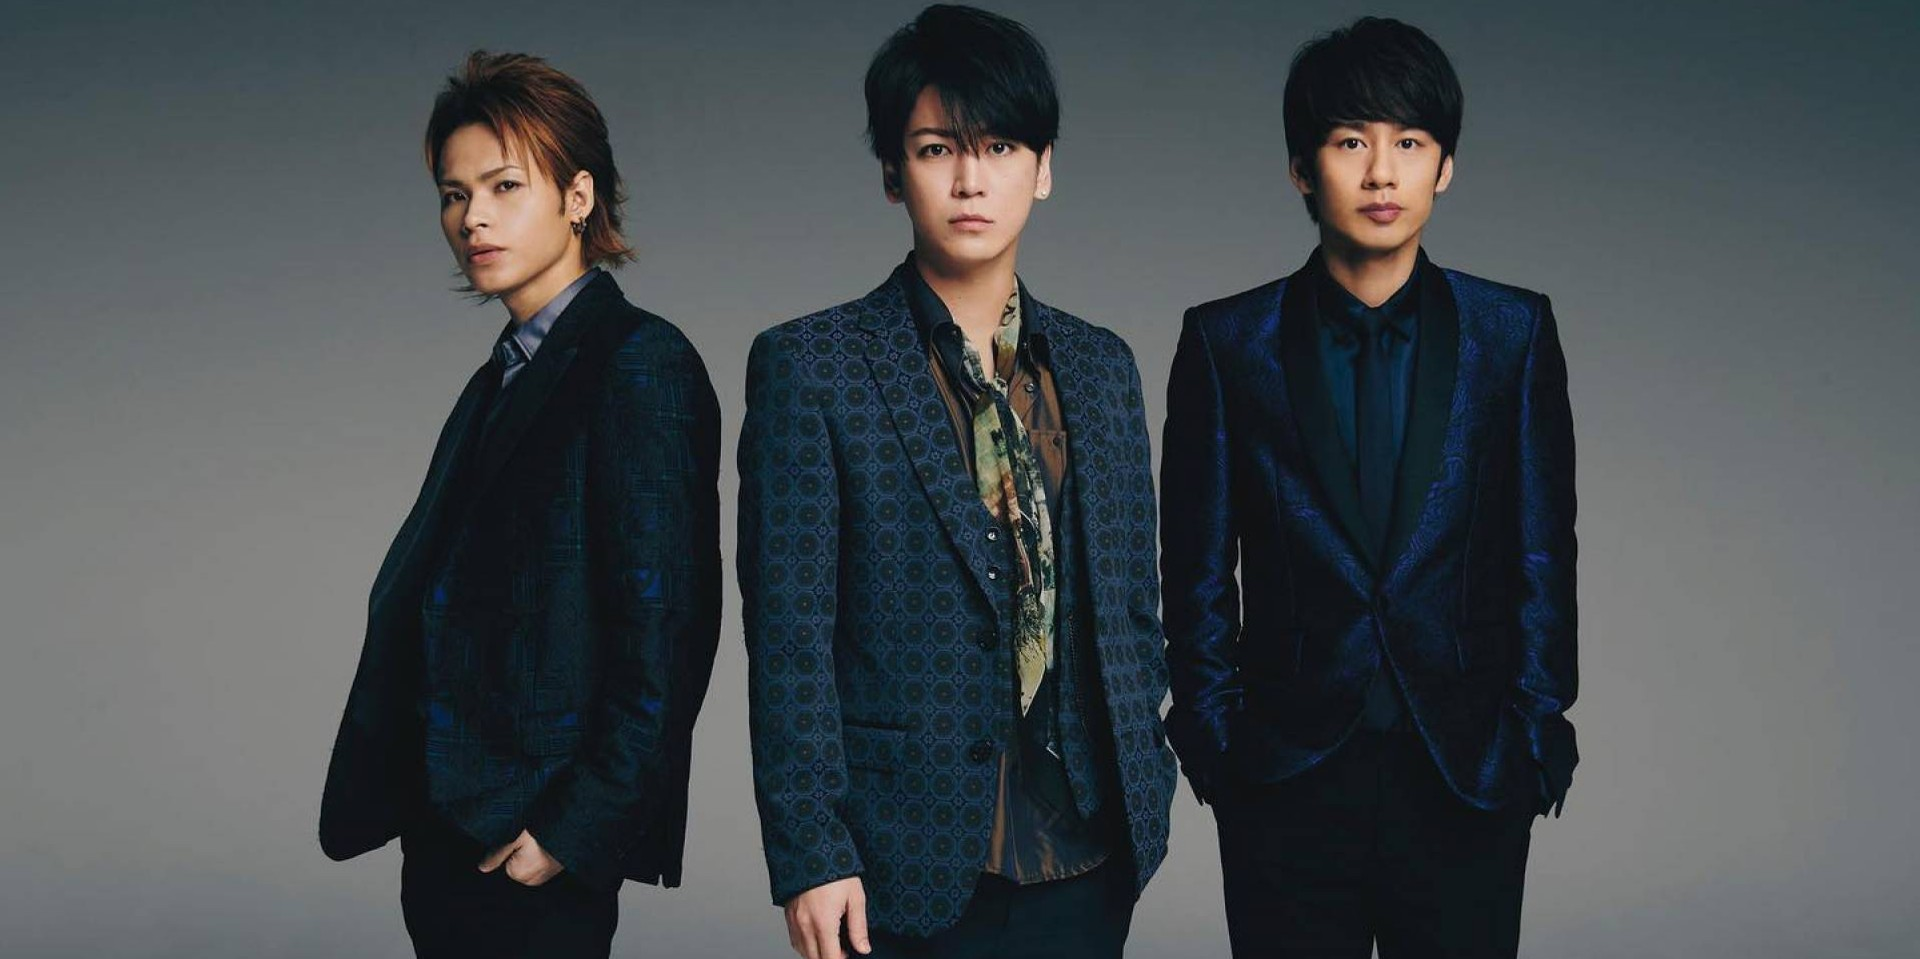 J-pop act KAT-TUN to celebrate 15th anniversary with concert series and online show